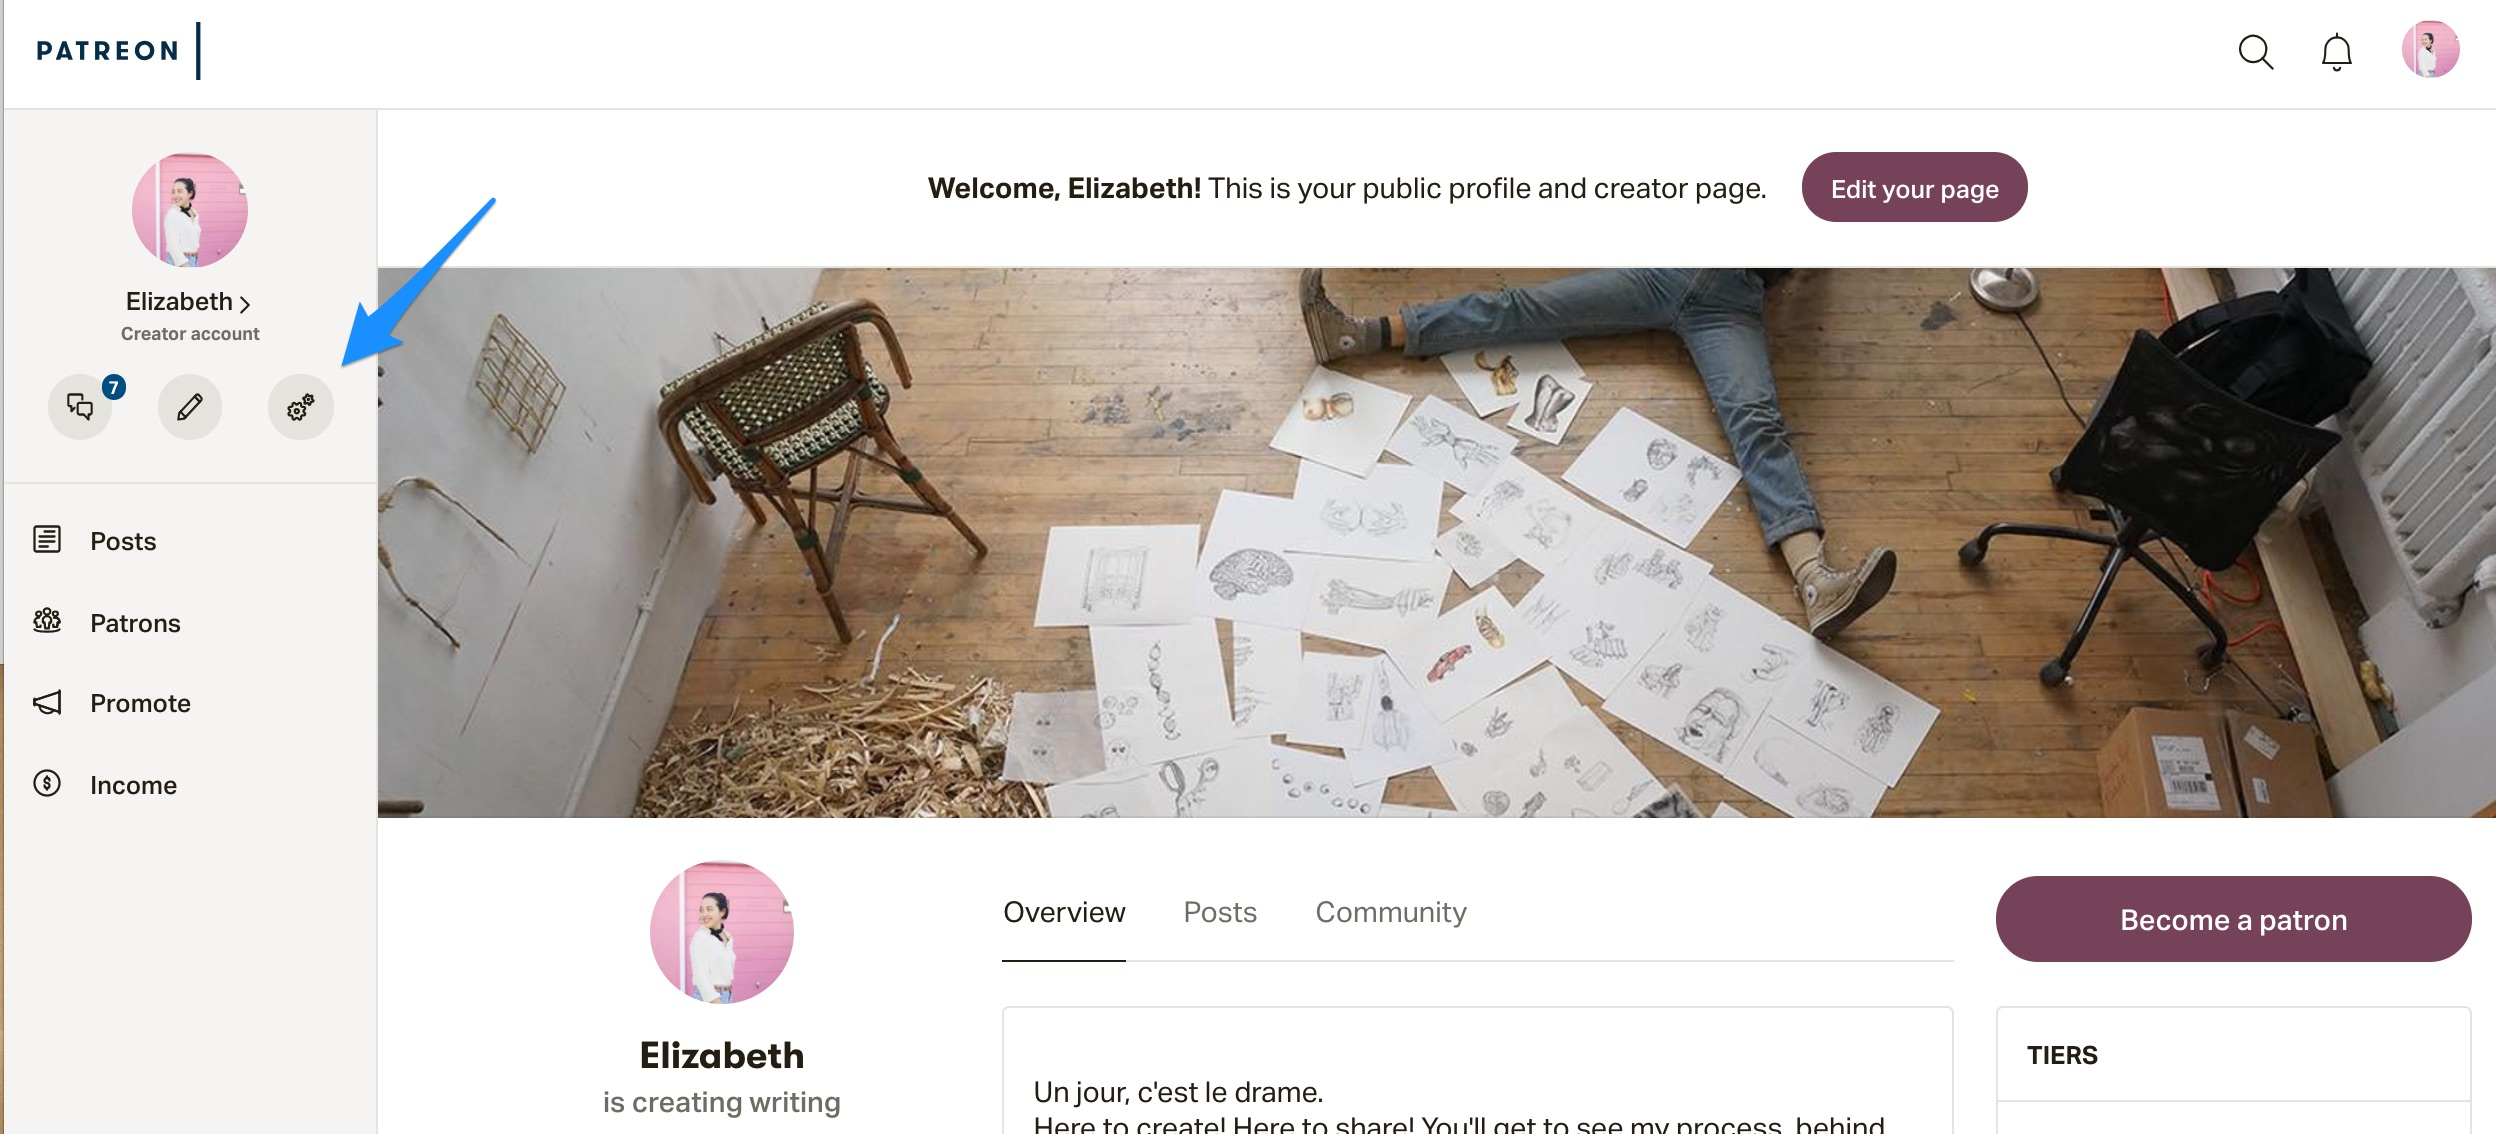 Elizabeth_is_creating_writing___Patreon_and_What_is_a_team_account____Patreon_Help_Center.jpg